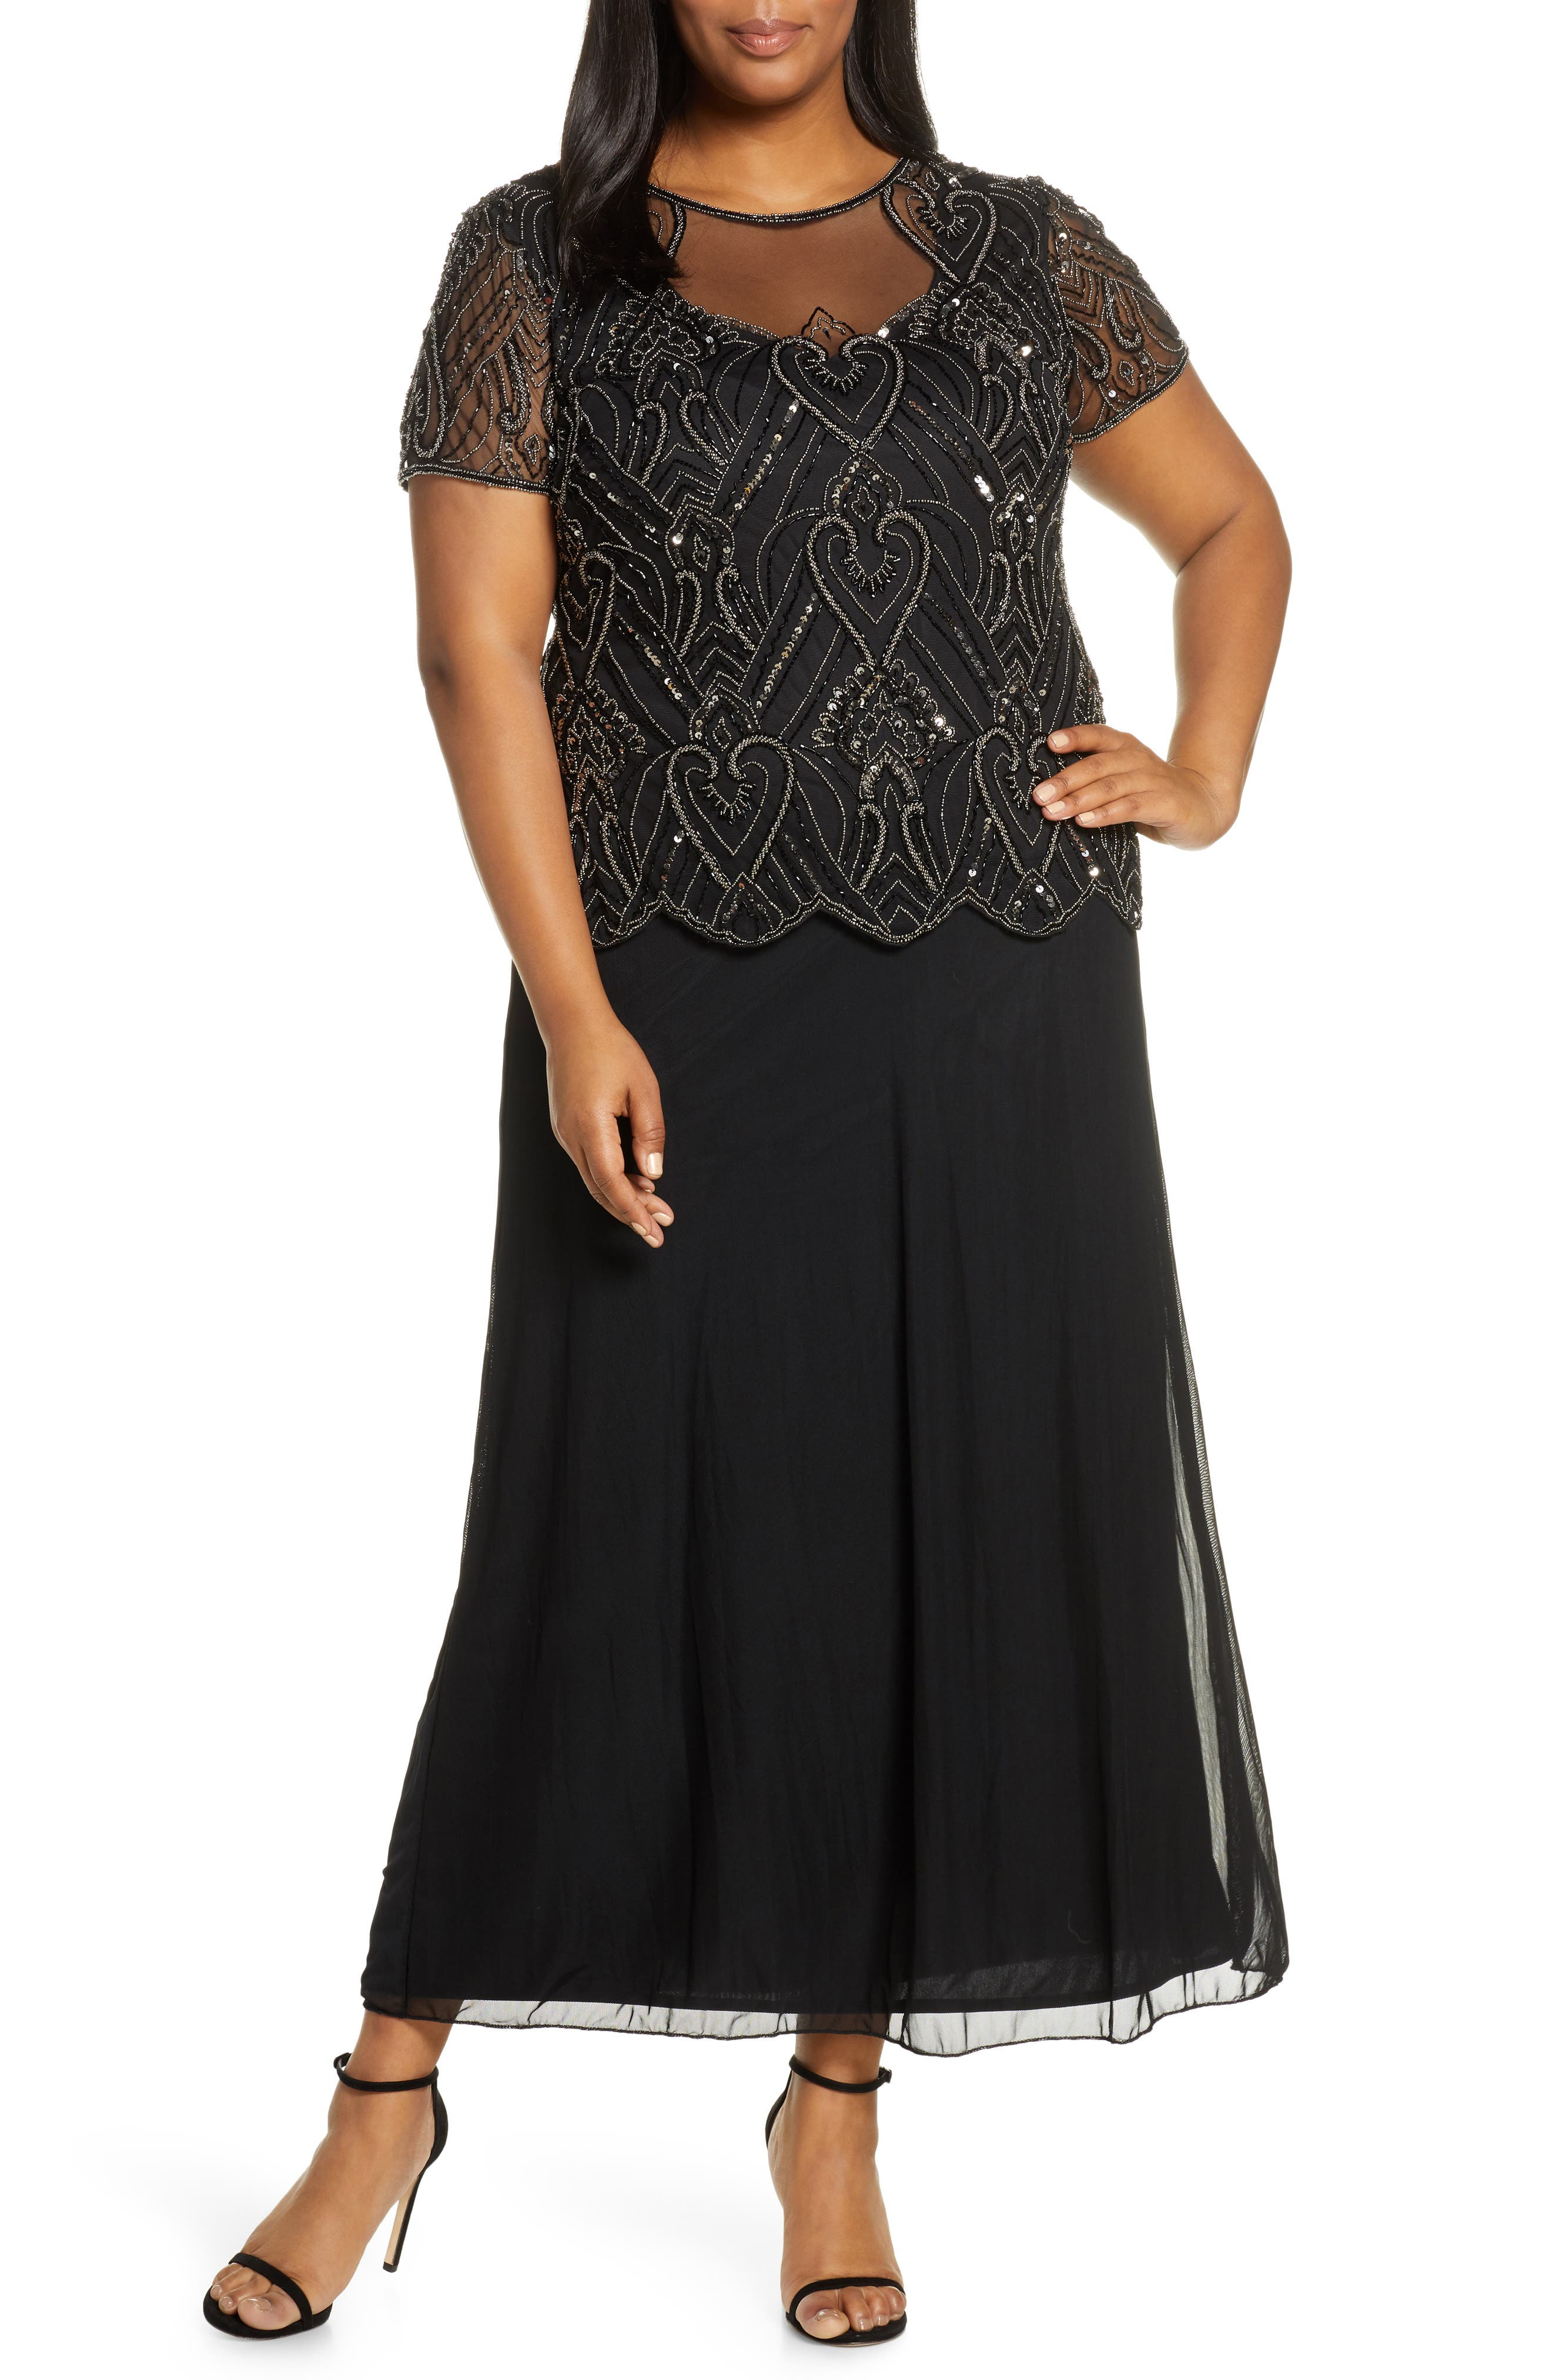 Vintage 1920s Dresses – Where to Buy Plus Size Womens Pisarro Nights Embellished Mesh Mock Two-Piece Gown Size 22W - Black $248.00 AT vintagedancer.com